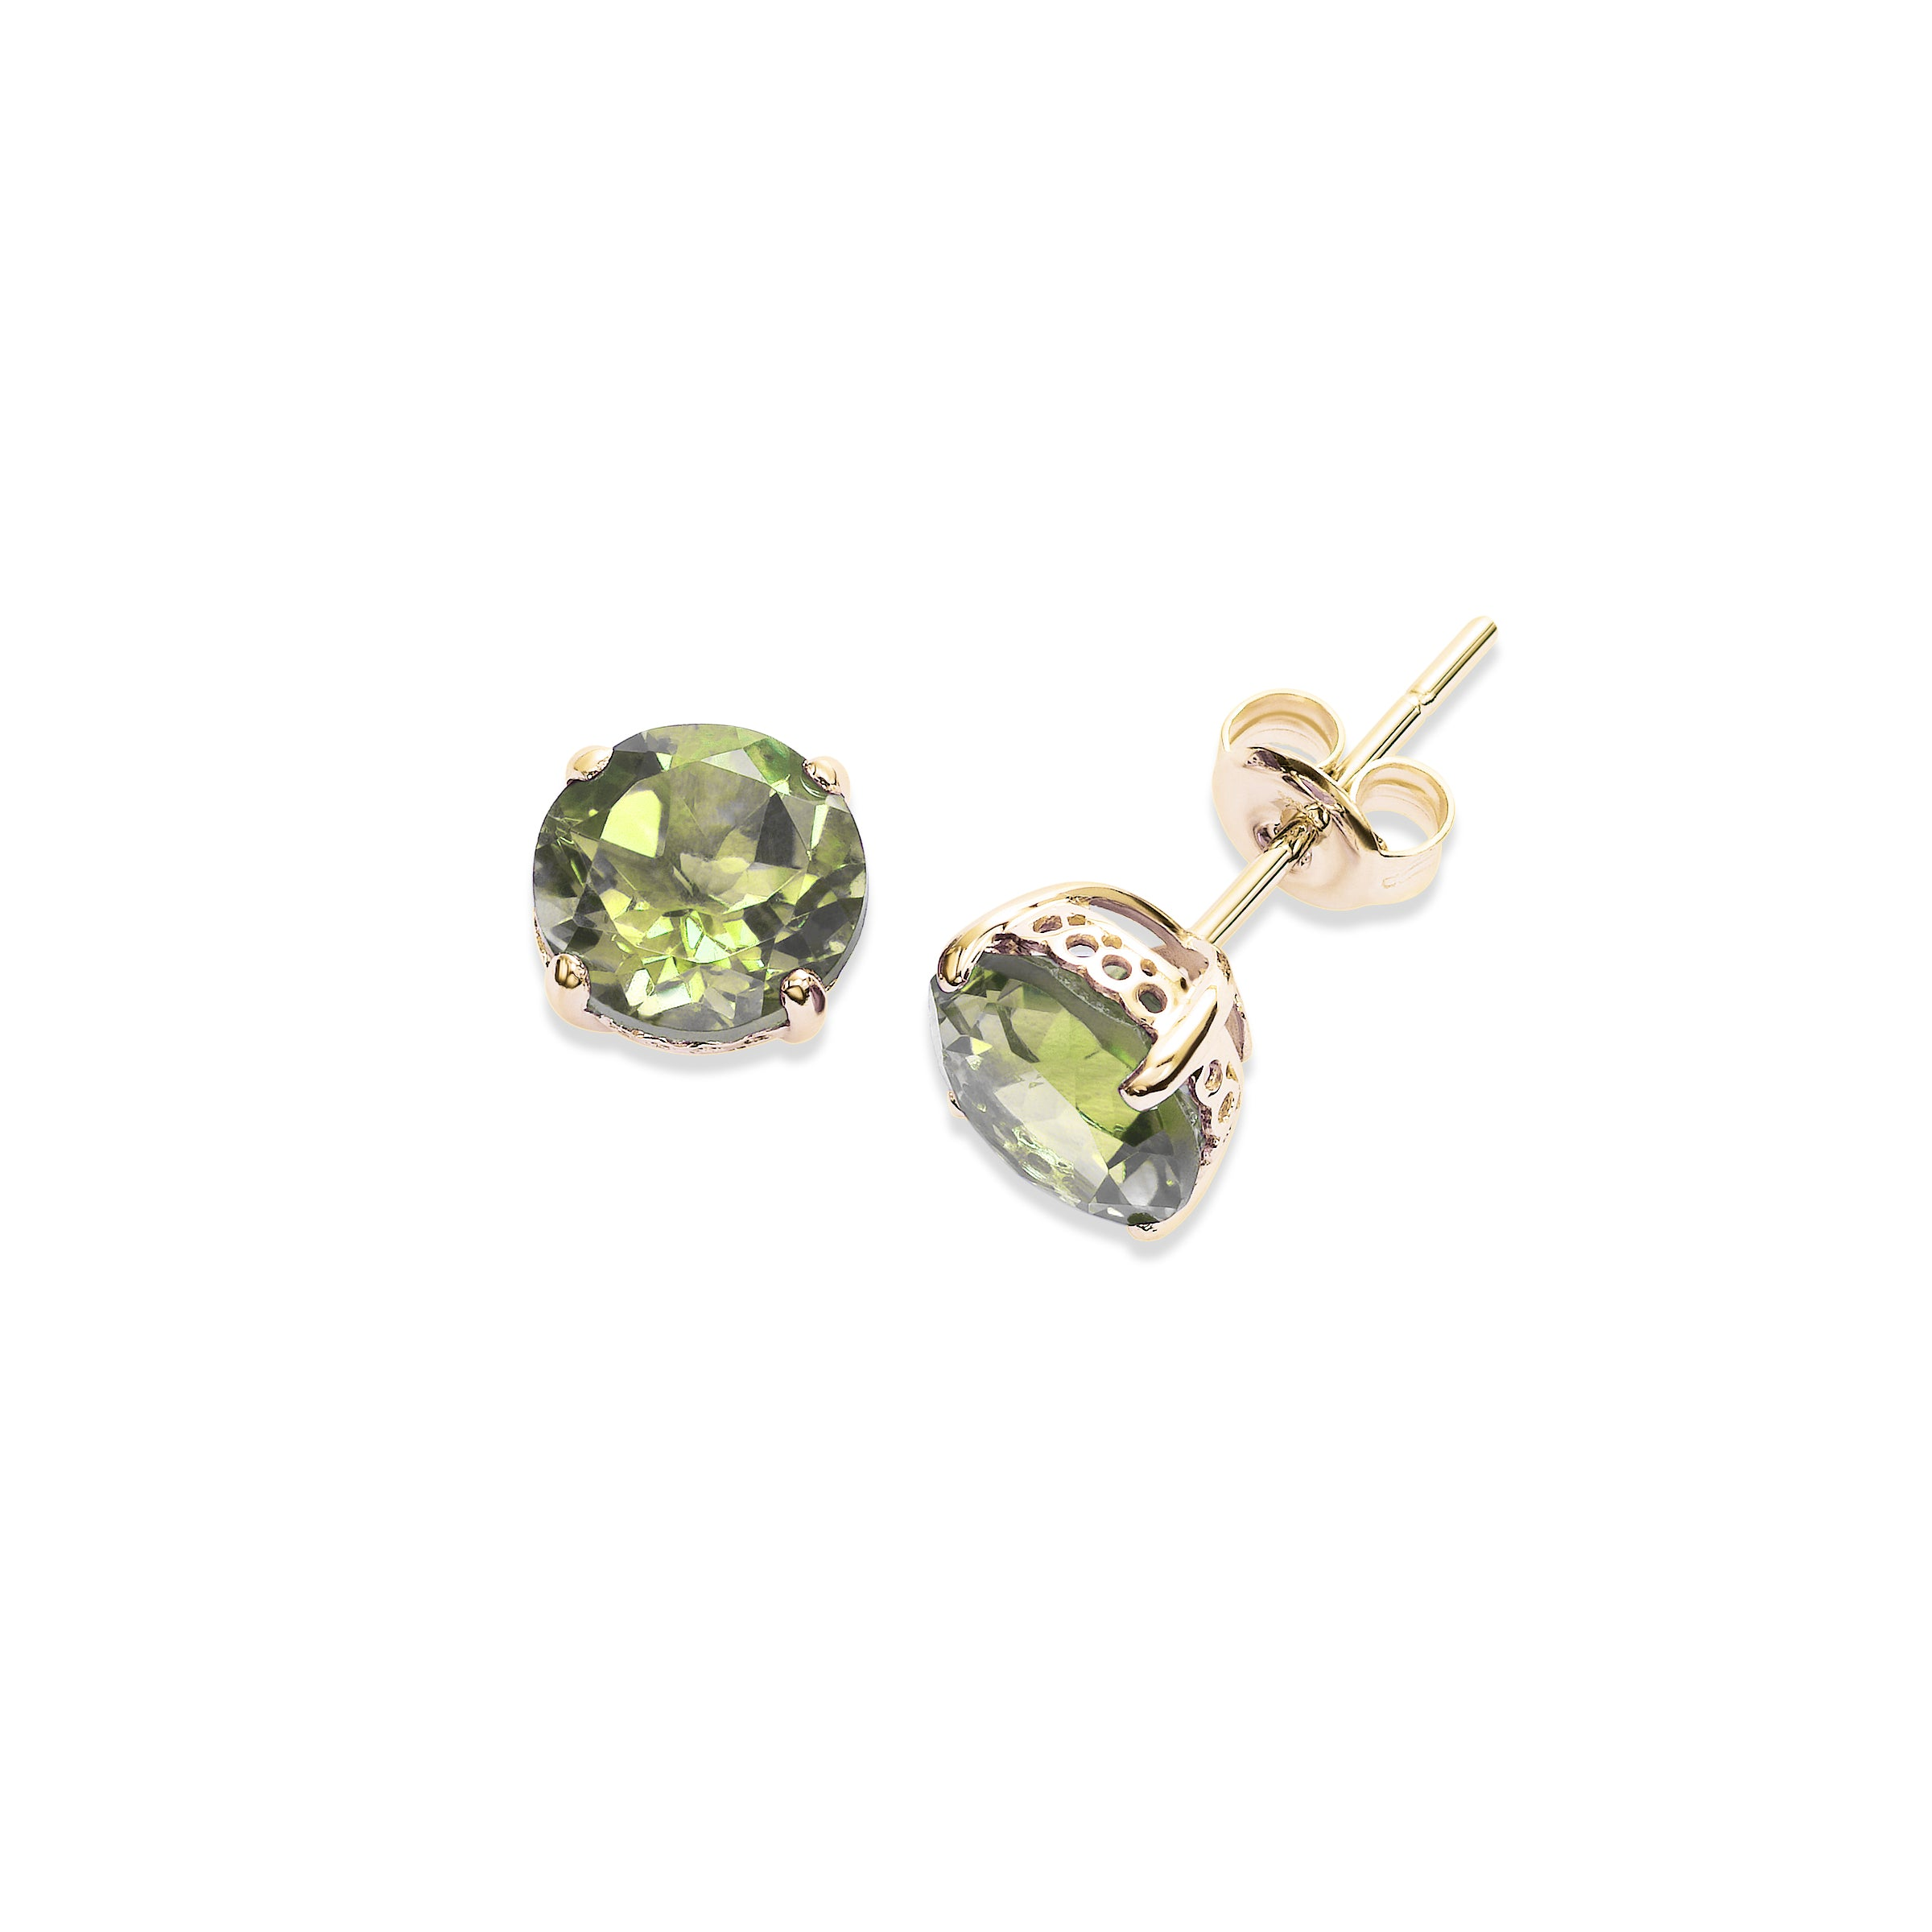 Round Peridot 8MM Stud Earrings, 14K Yellow Gold